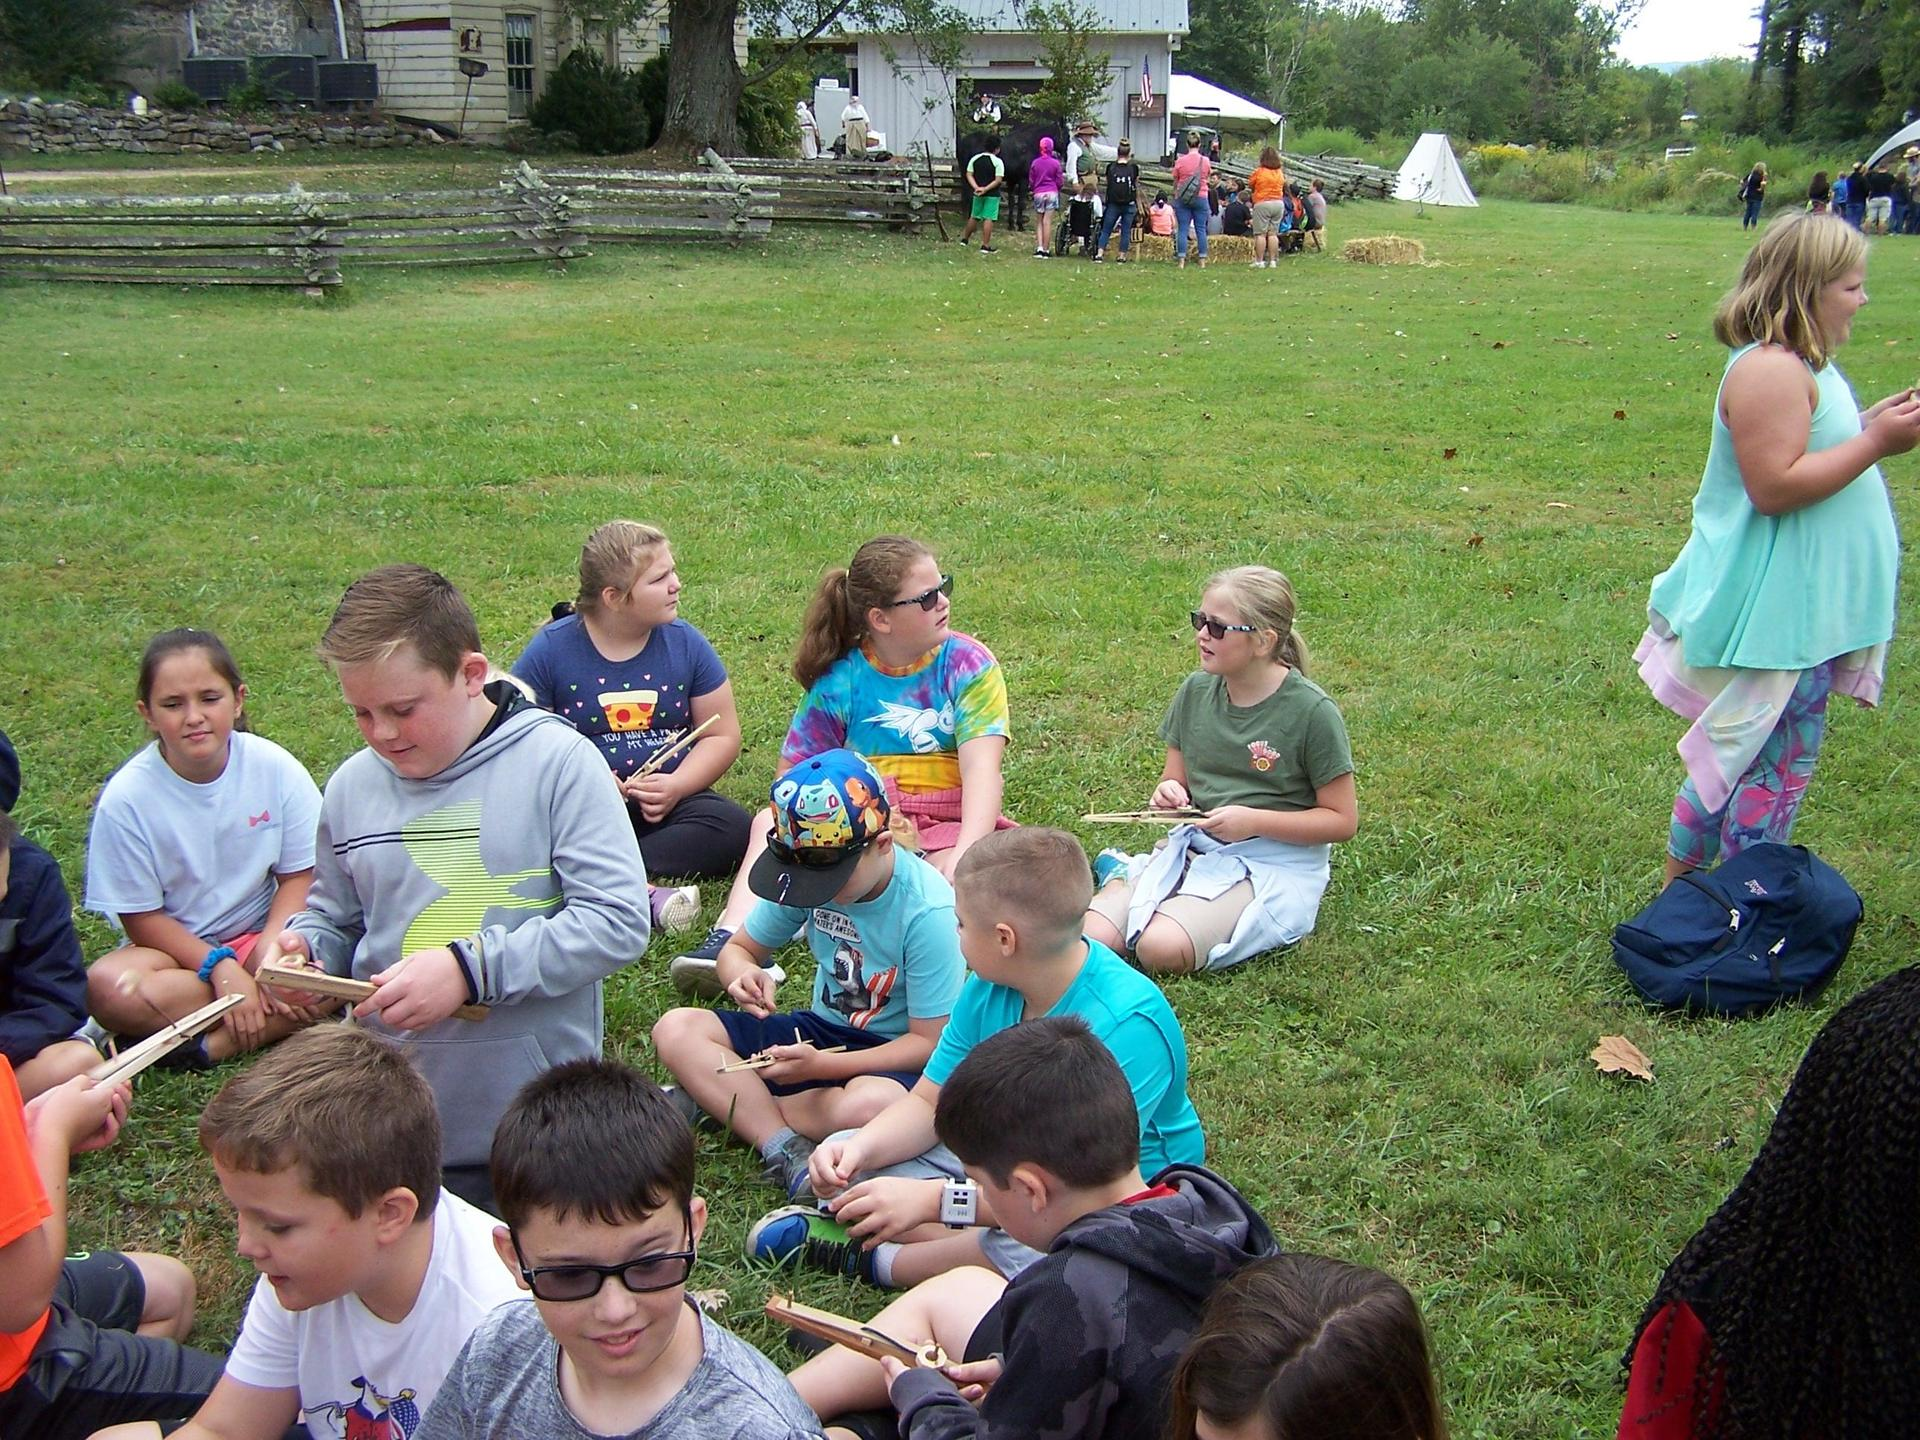 Students at Mustering Grounds in Abingdon learning about Revolutionary War games